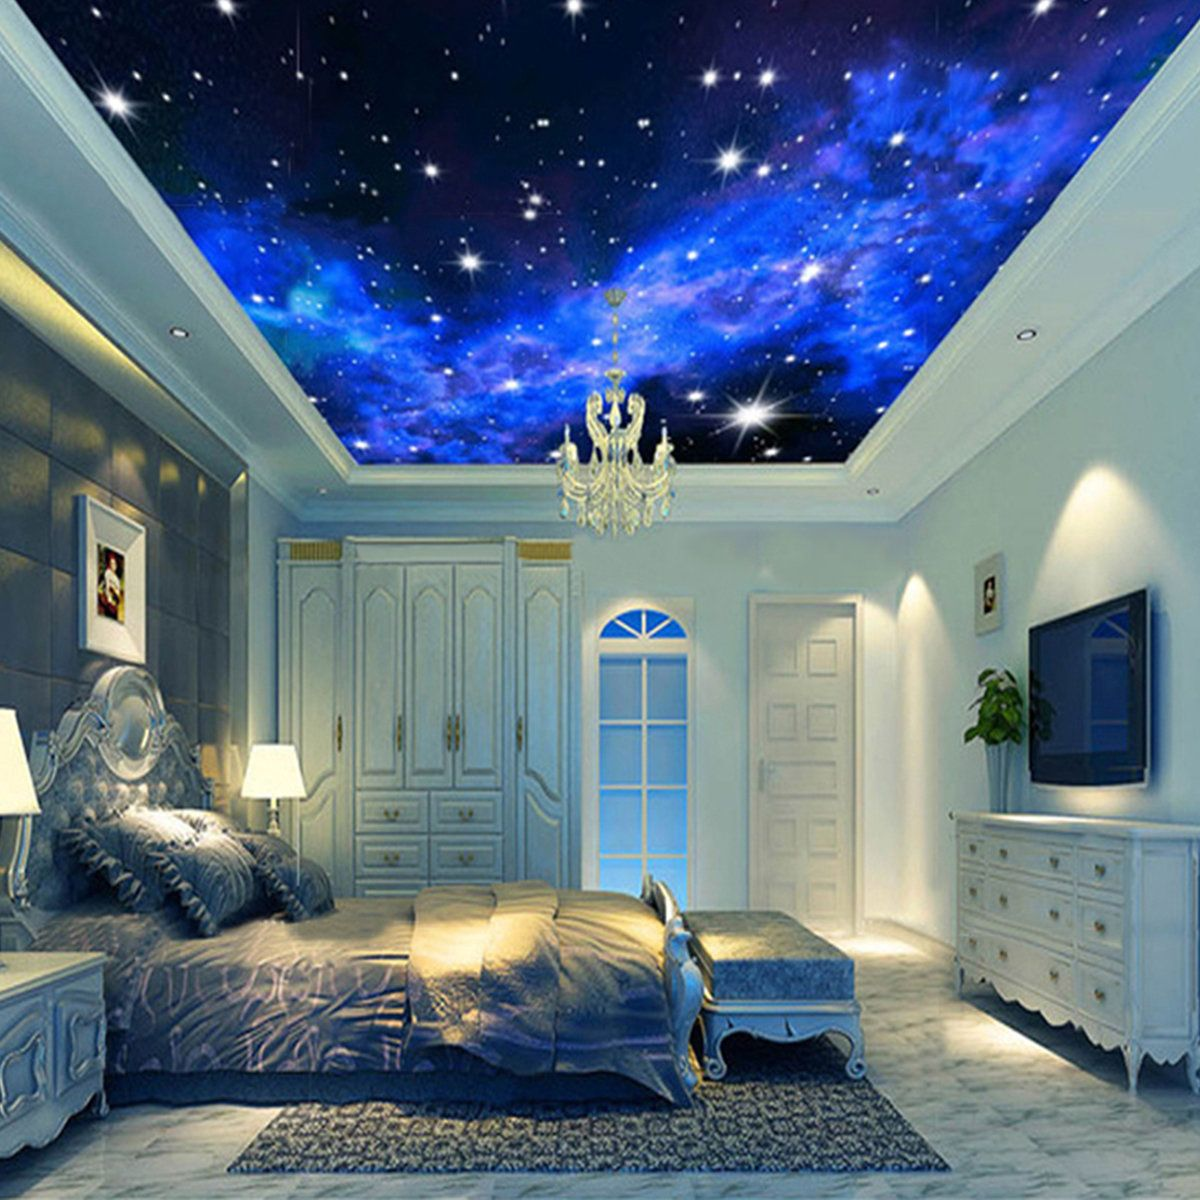 3d wallpaper mural night clouds star sky wall paper for Sleeping room decoration